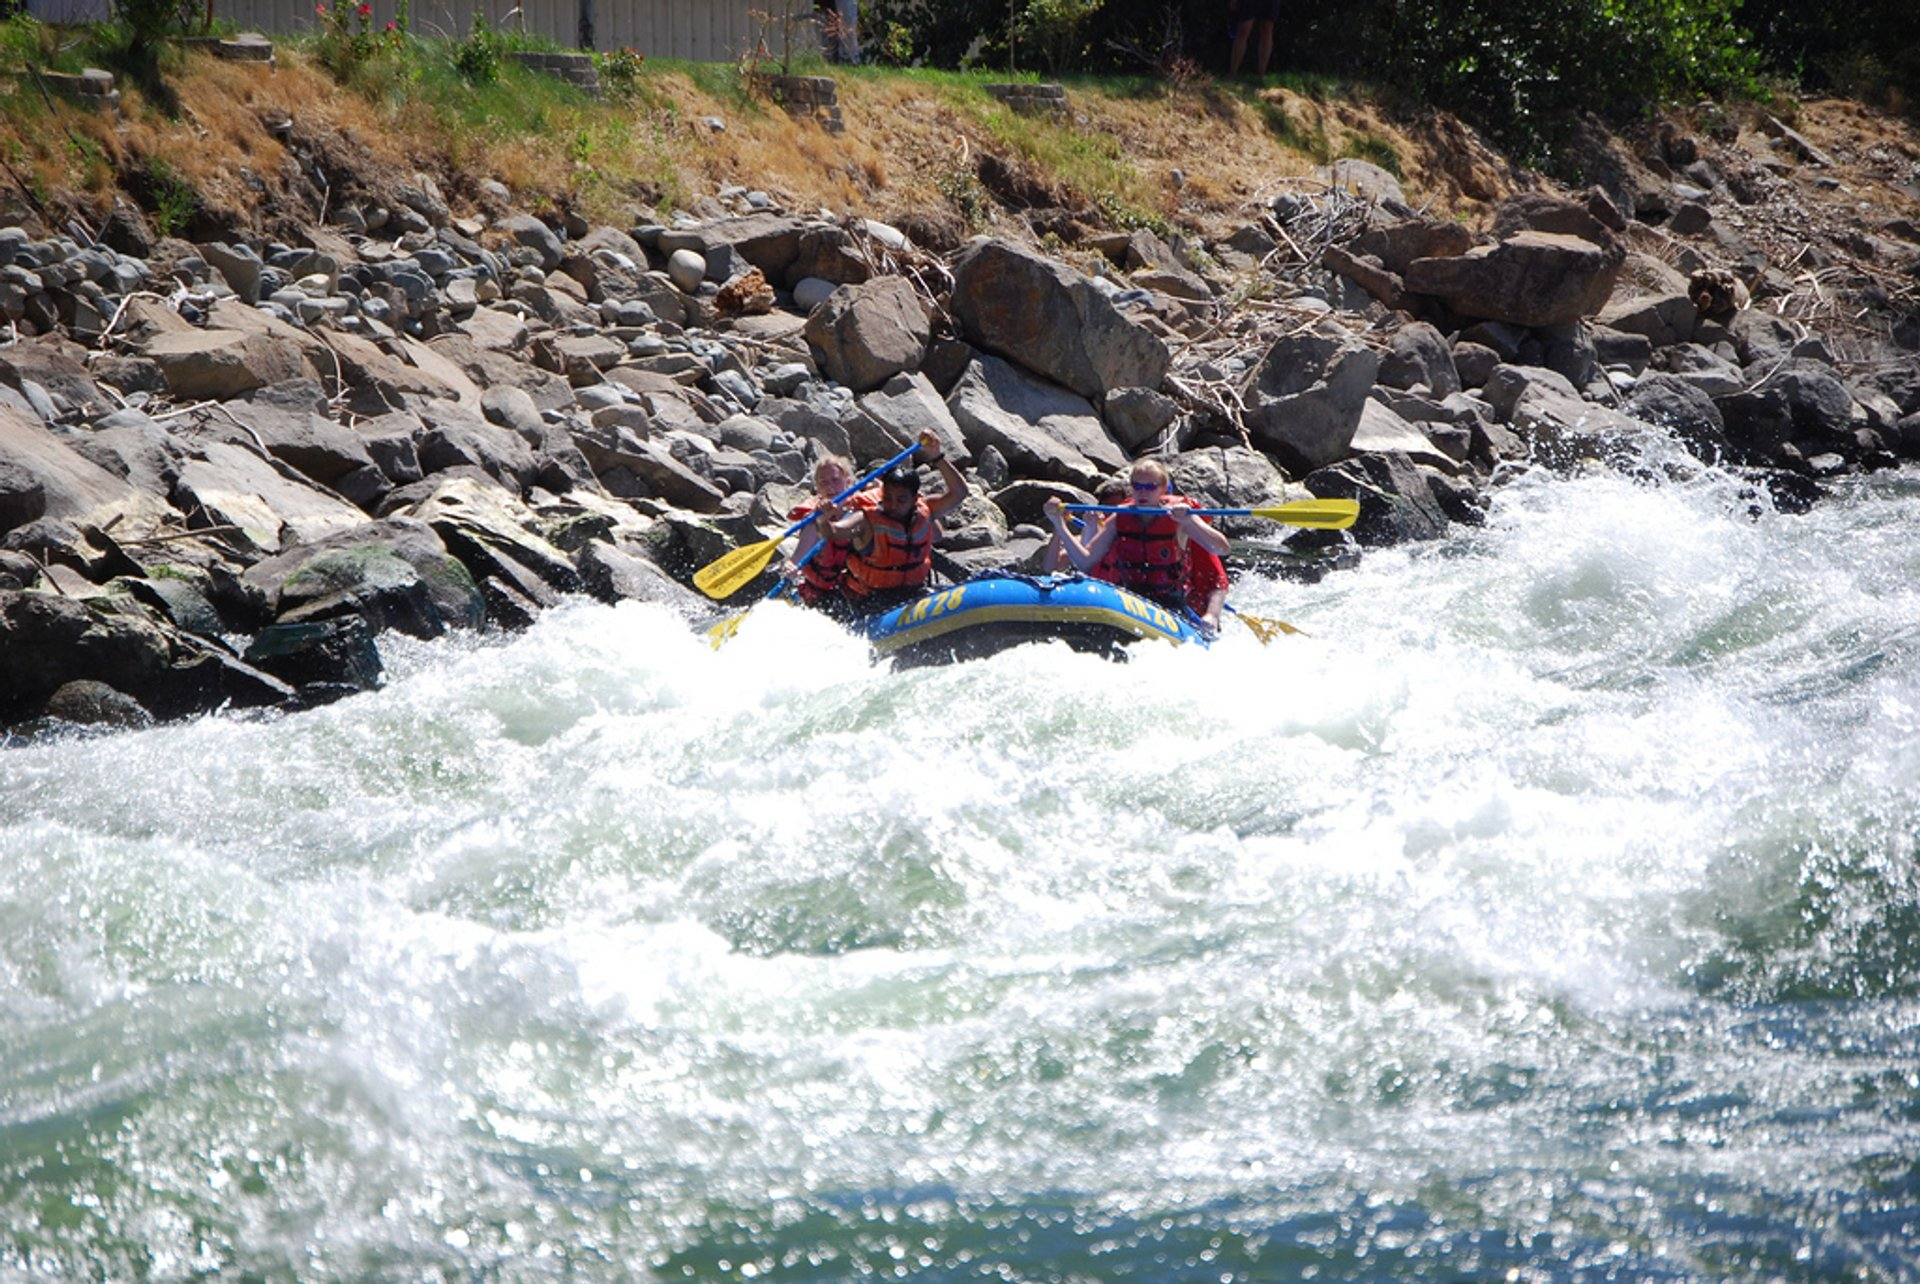 Rafting at Wenatchee River 2020